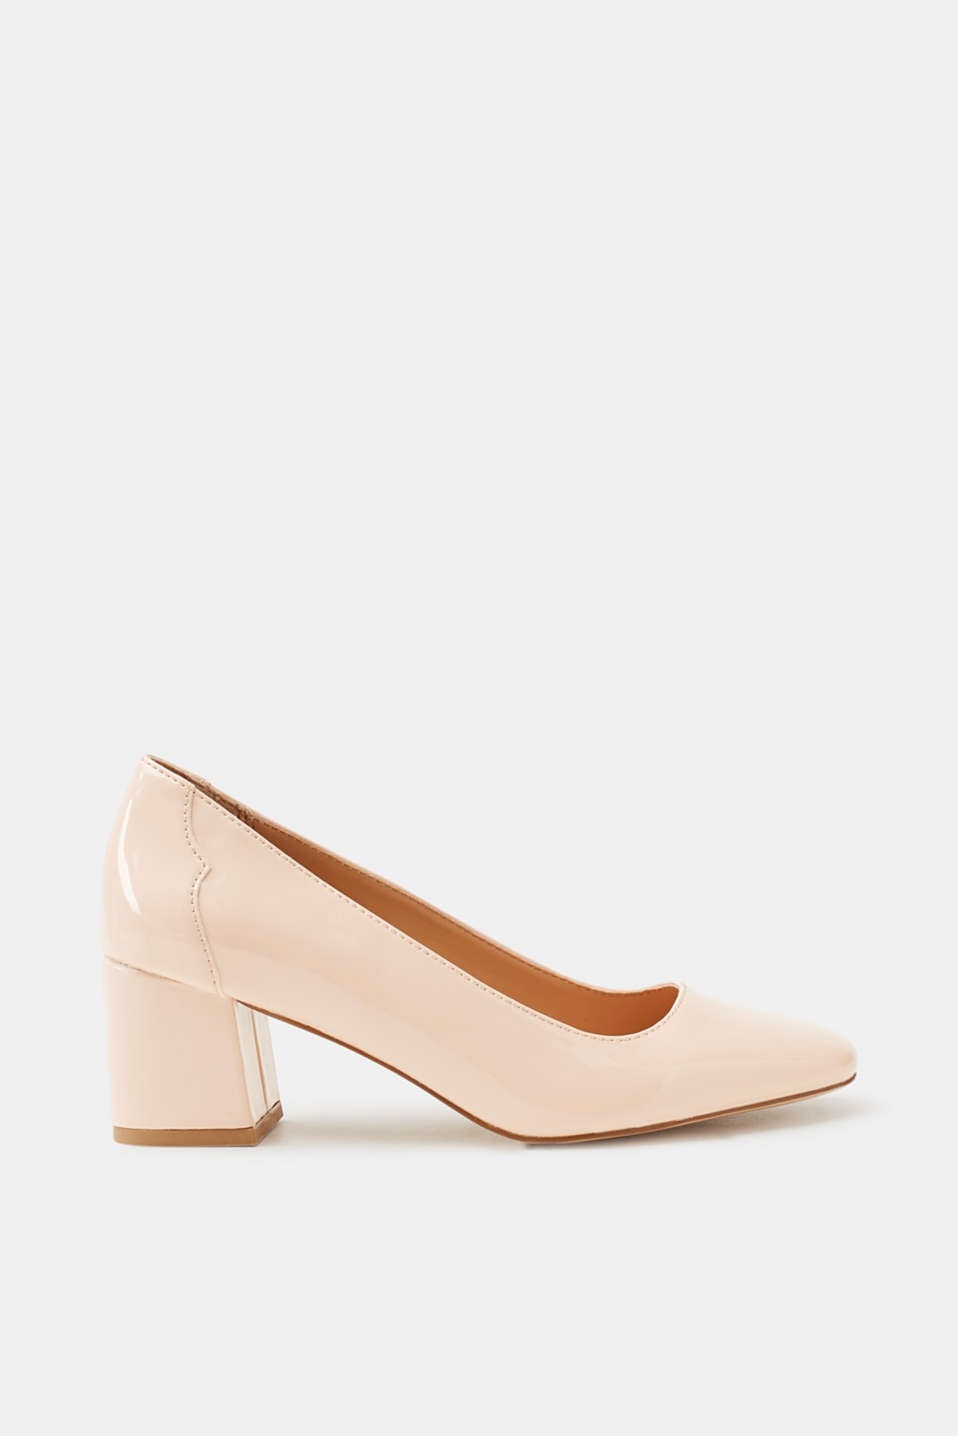 Esprit - Patent leather court shoes with a block heel, producing using a vegan manufacturing process